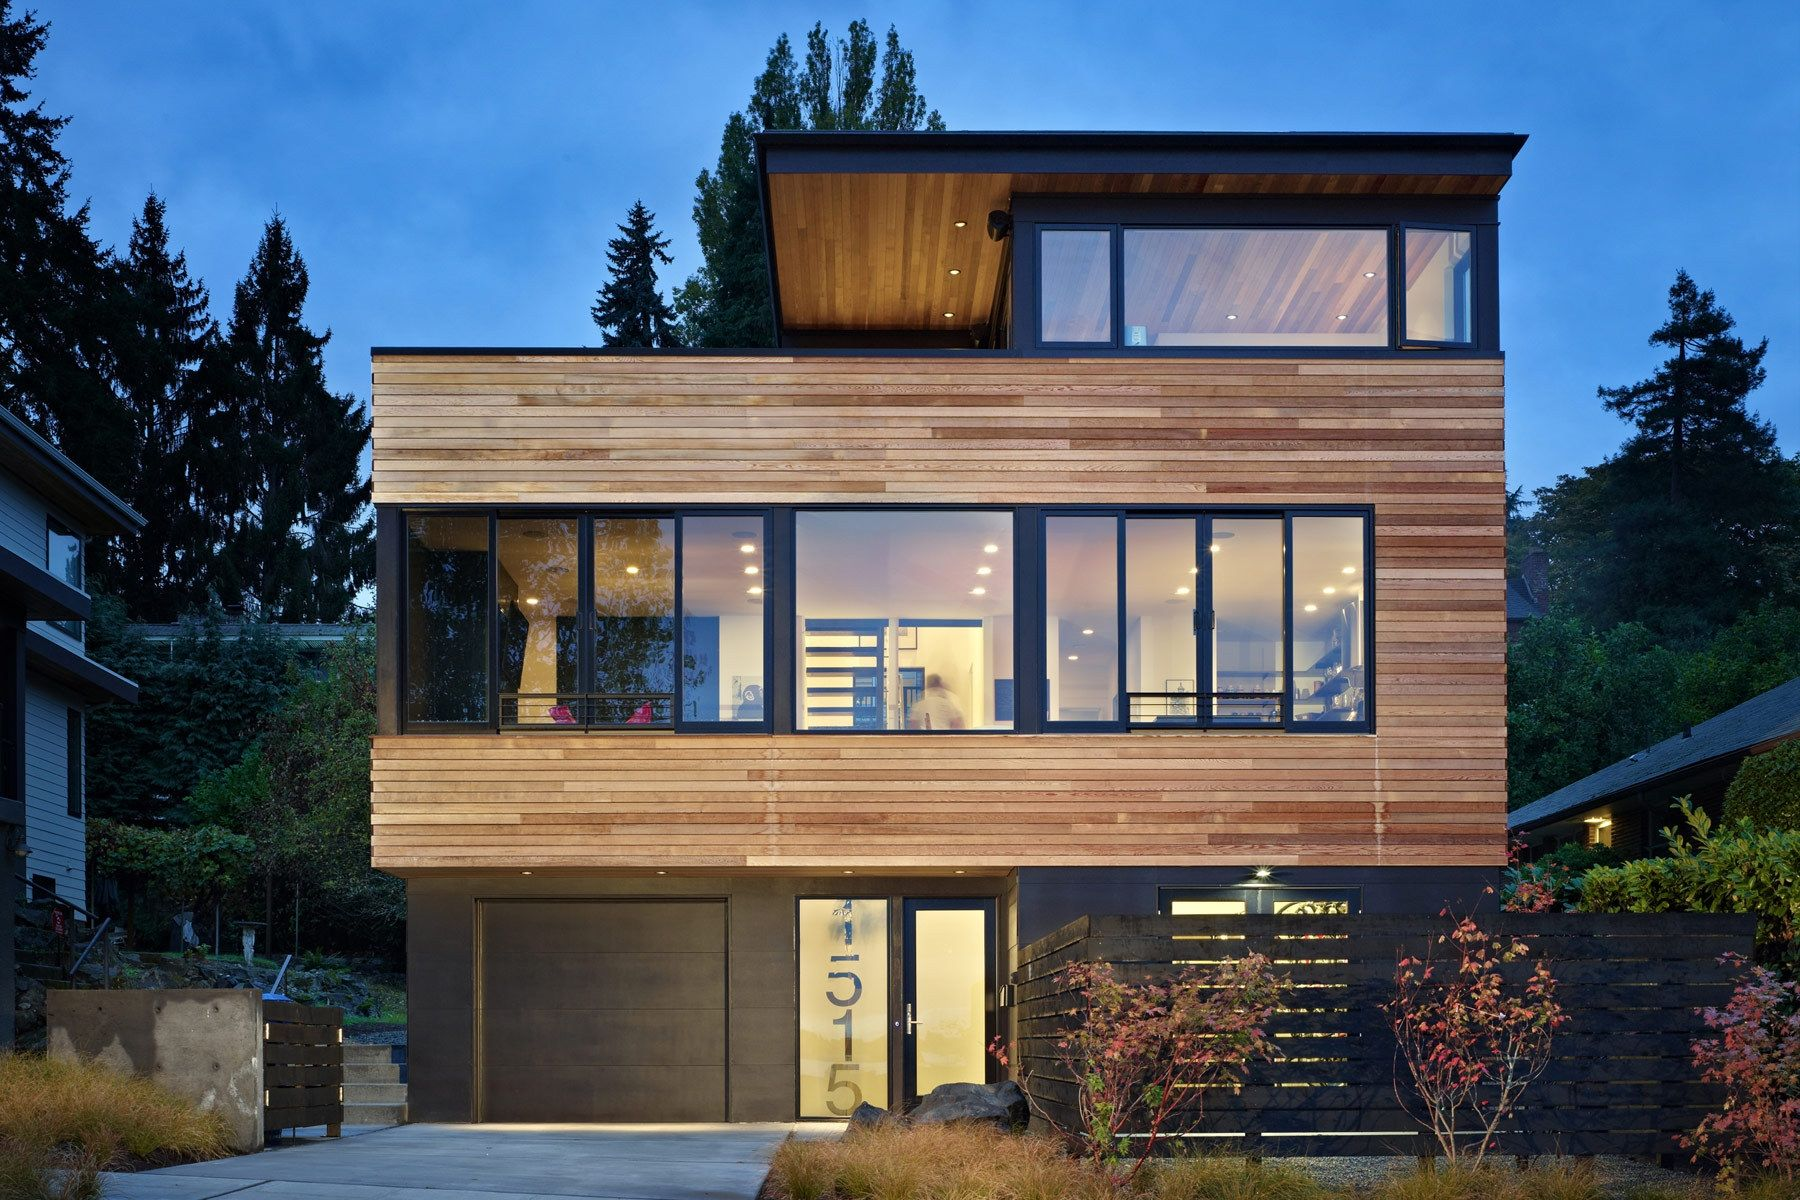 Architecture modern seattle home ranch house designs for Modern home decor